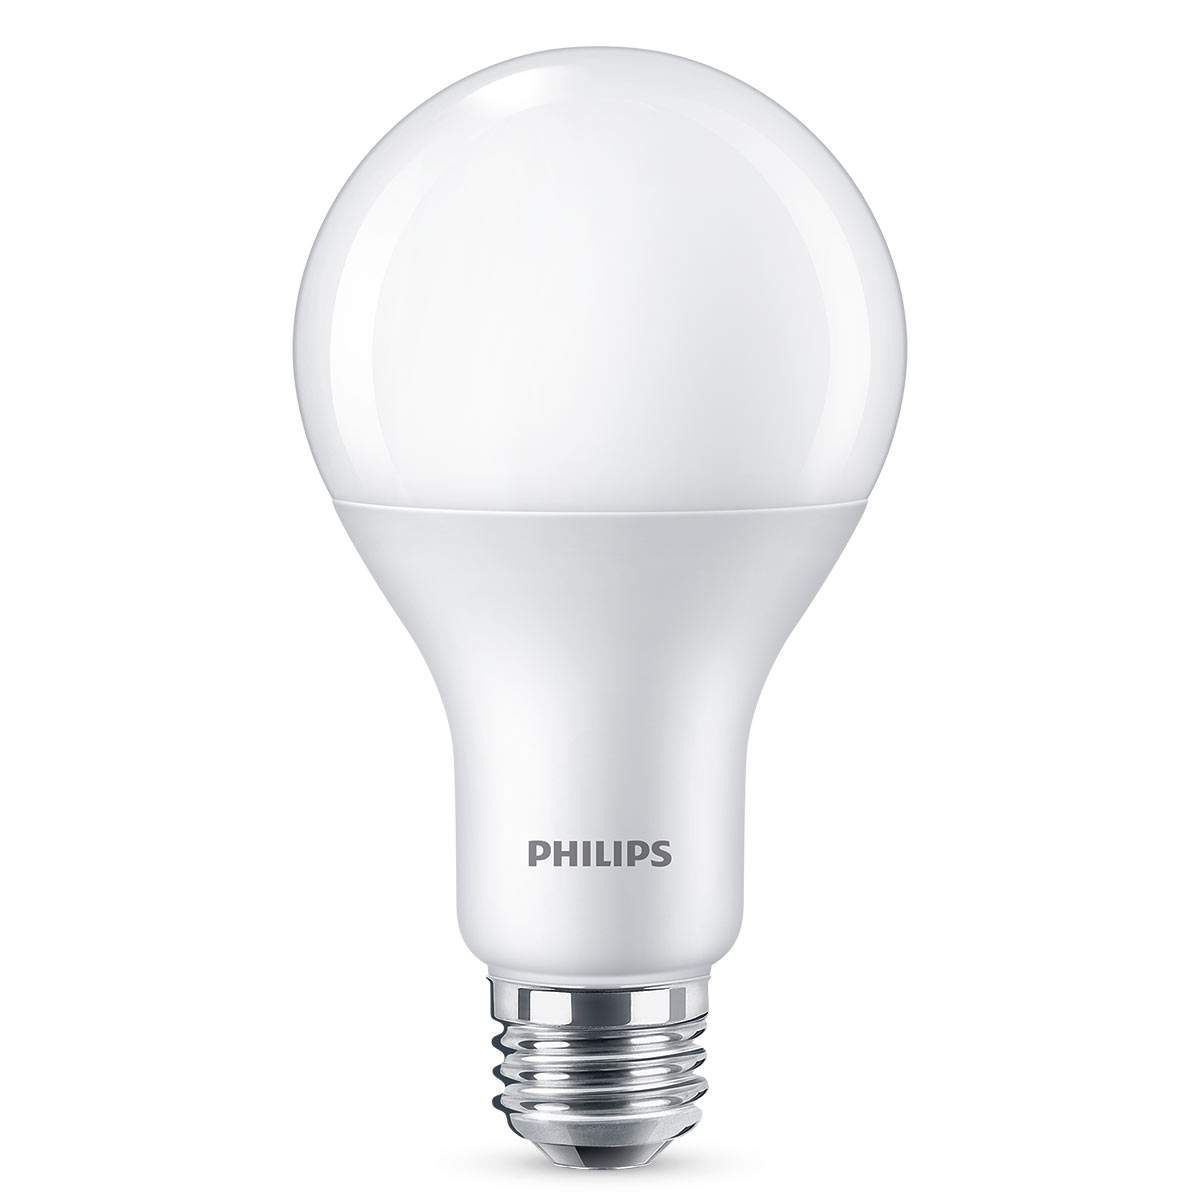 Philips E27 Led Lampe 19w Warmweiß 2 500 Lumen Led Glühbirnen - Birne E27